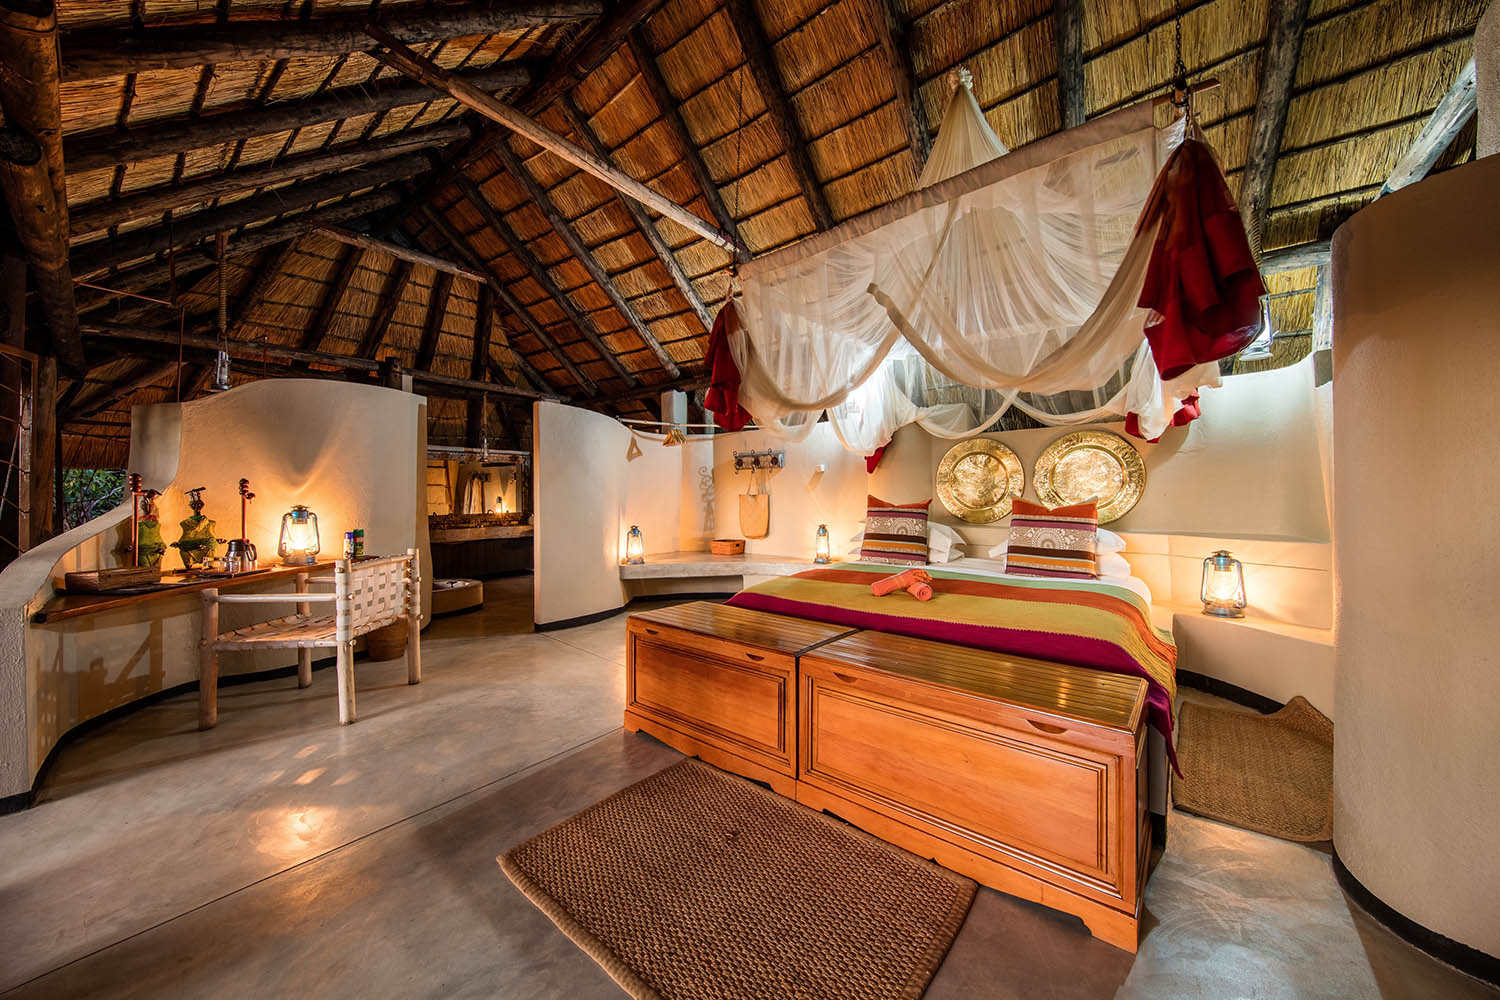 kapamba bushcamp lodge-zambia-in-style-tours-travel-safari-packages-lodges-south-luangwa-national-park-bed